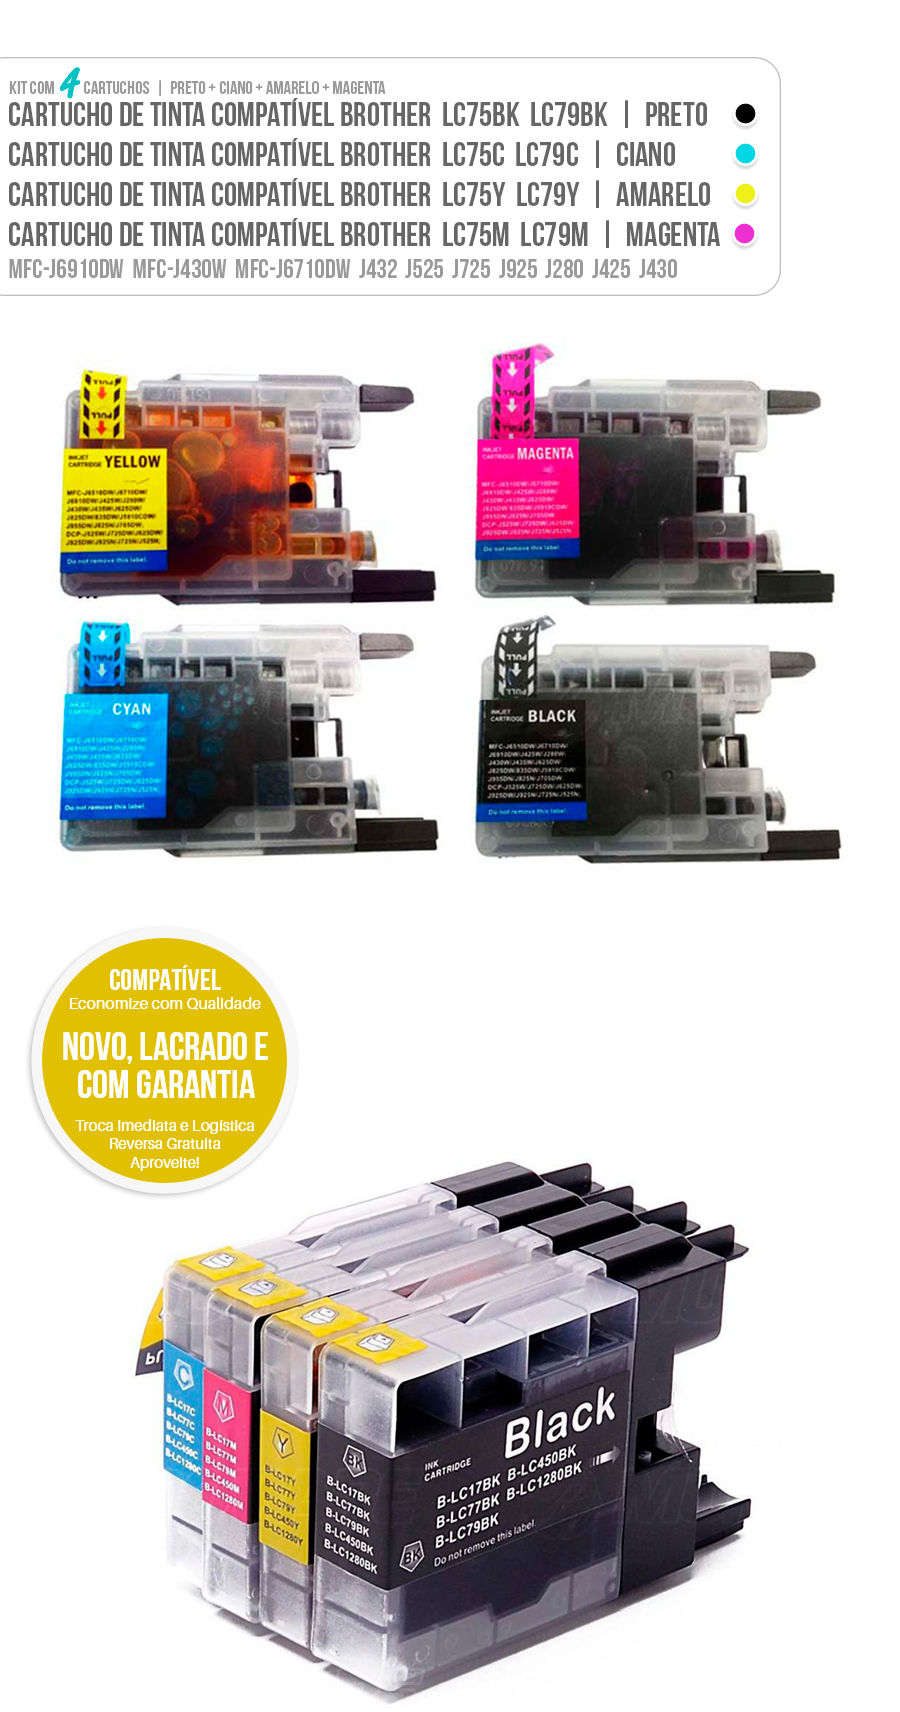 Cartucho de Tinta Kit Colorido LC79 LC75 LC-79 LC-75 Brother CMYK